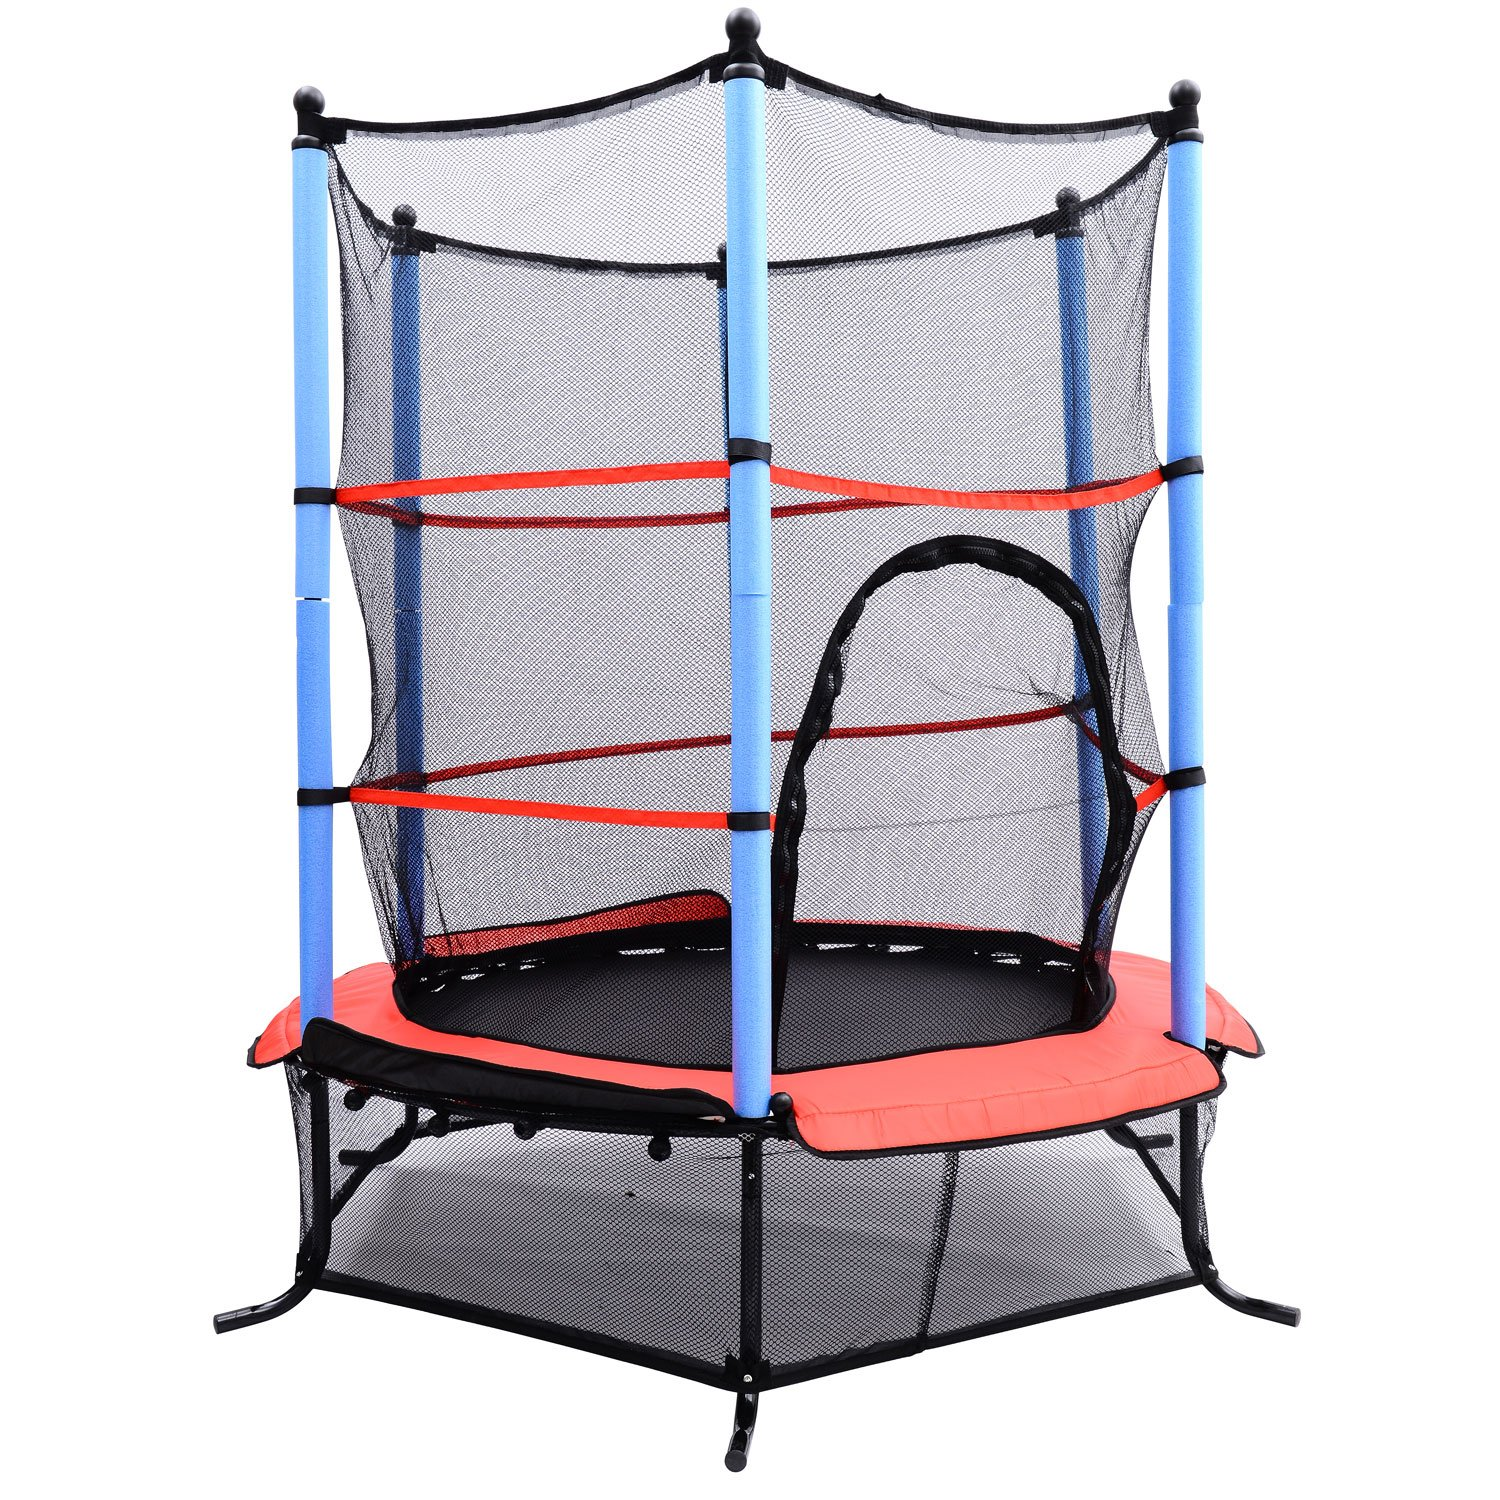 "Aosom 55"" Kids Jumping Trampoline & Enclosure Set at Sears.com"